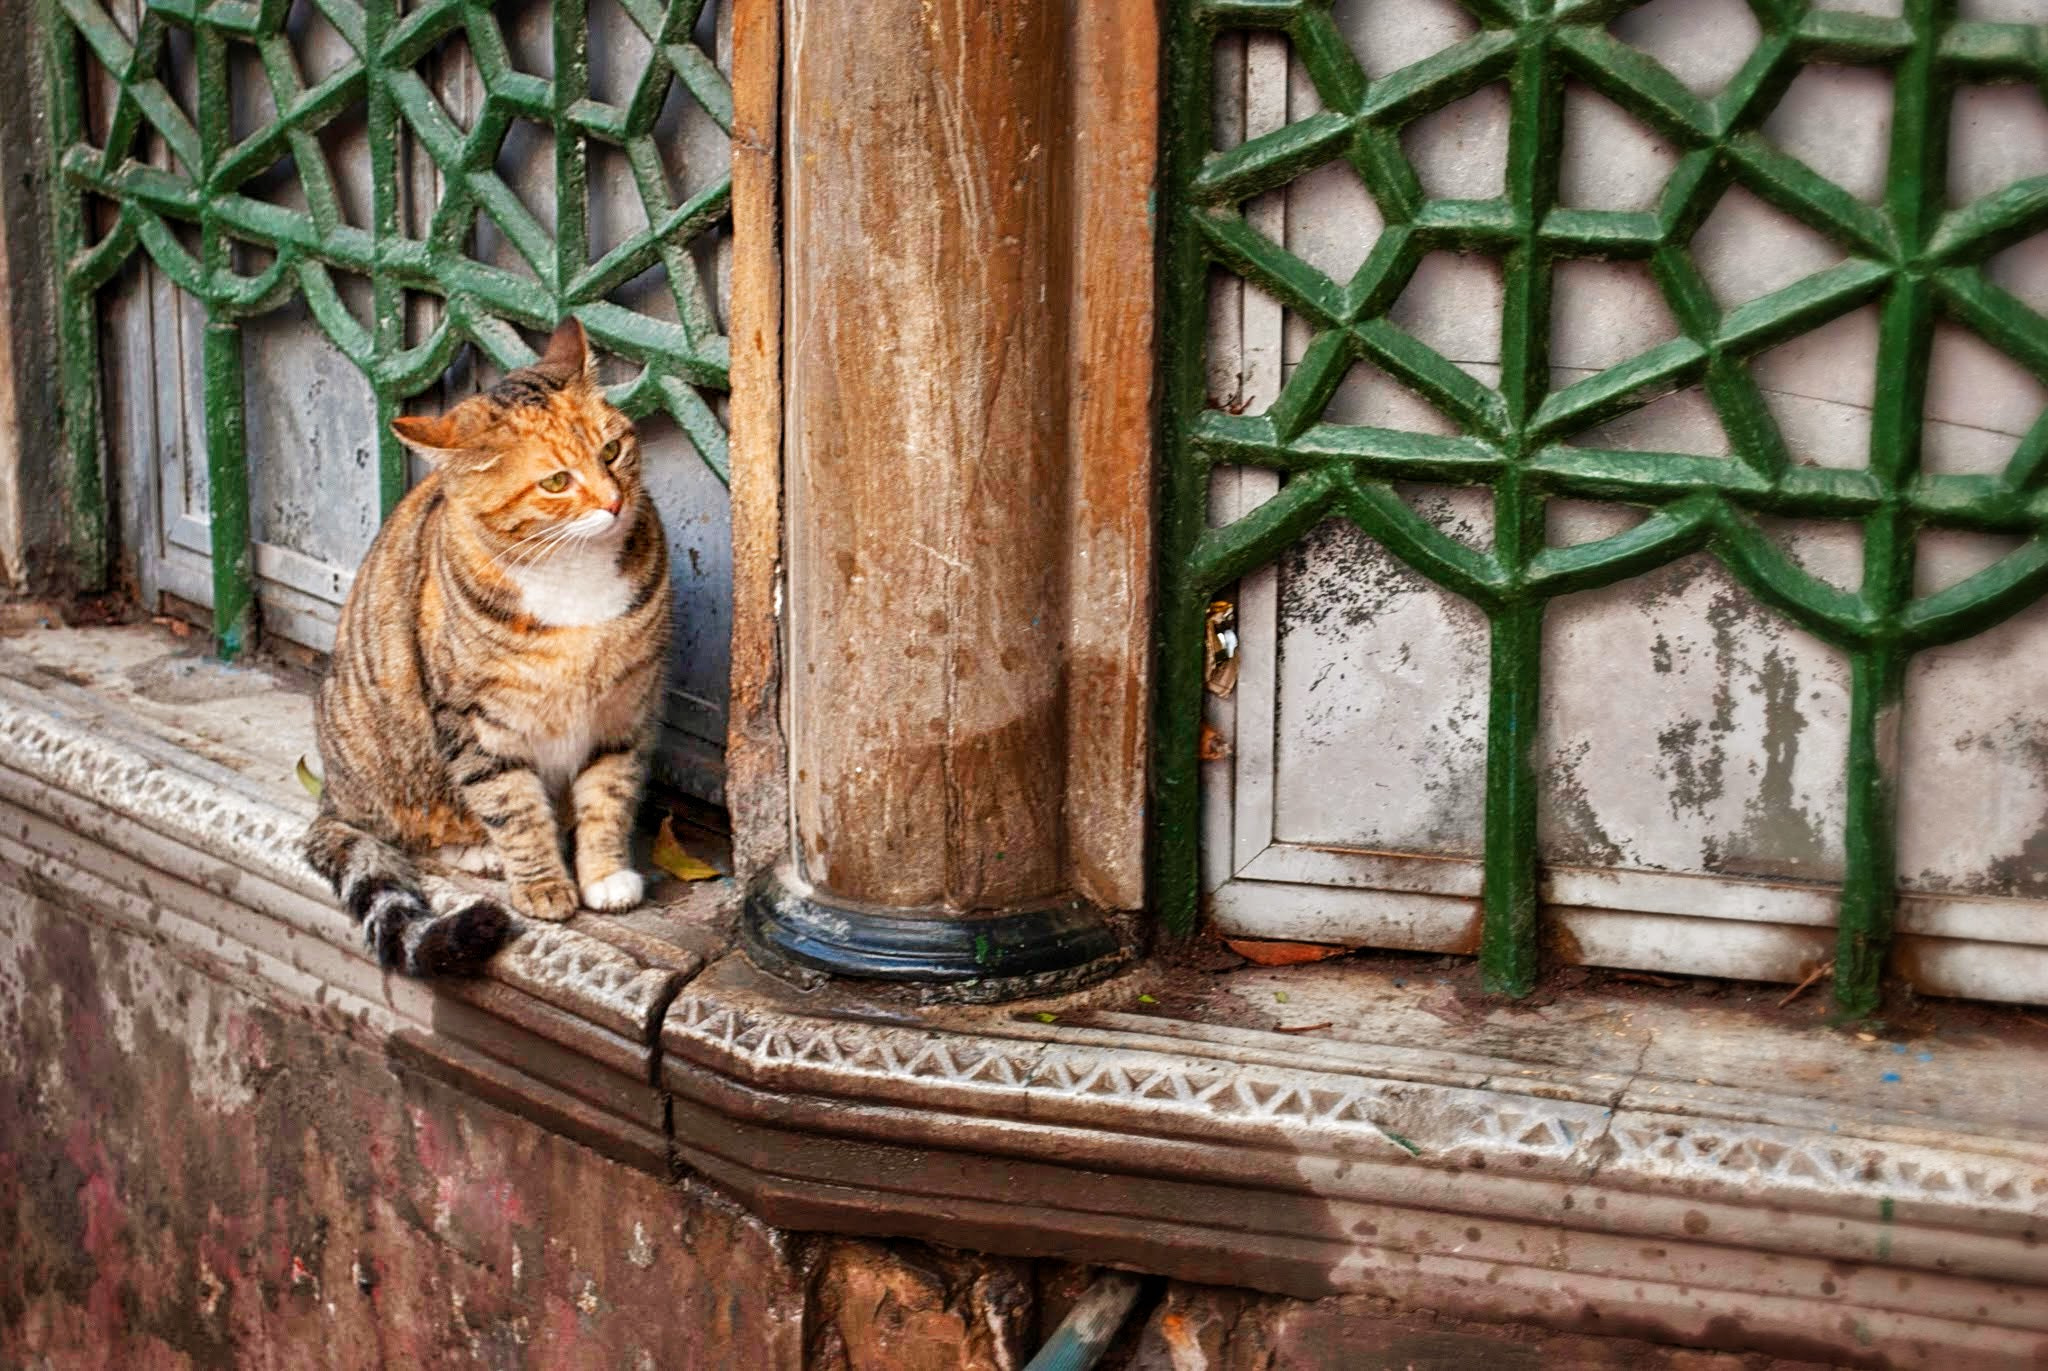 Cats and more cats, anyone is up for a trip to Istanbul right now? Source: Wikimedia